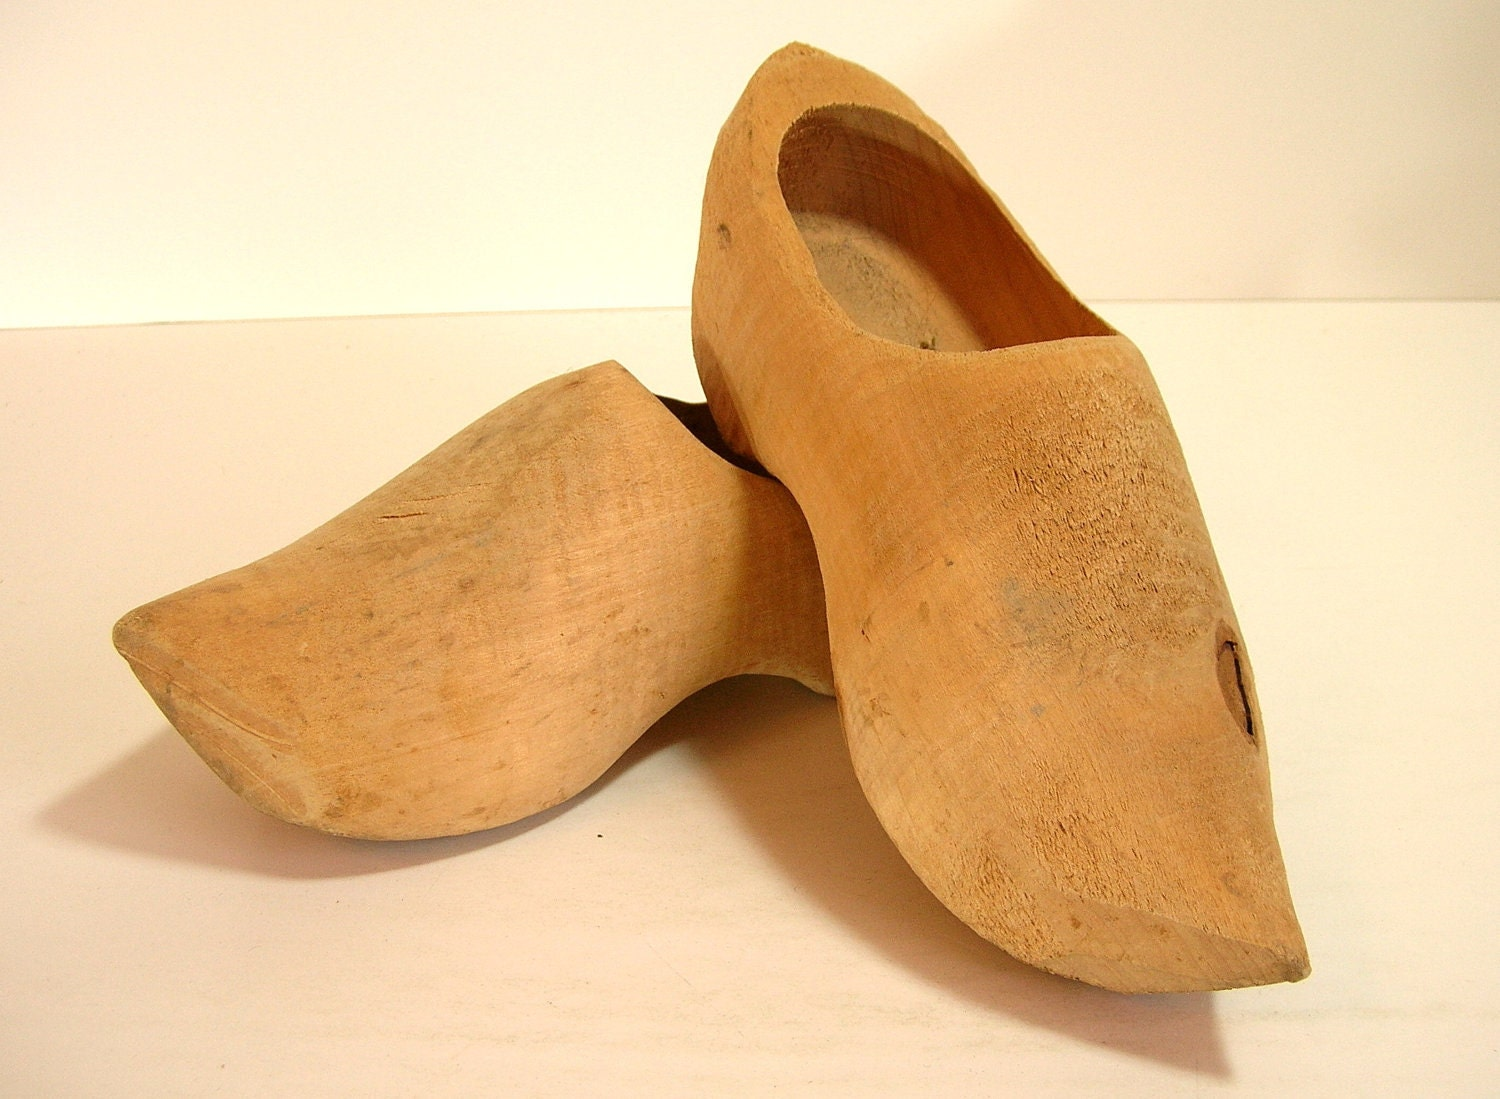 Vintage Dutch Clogs Shoes By RagtimeAnnie On Etsy